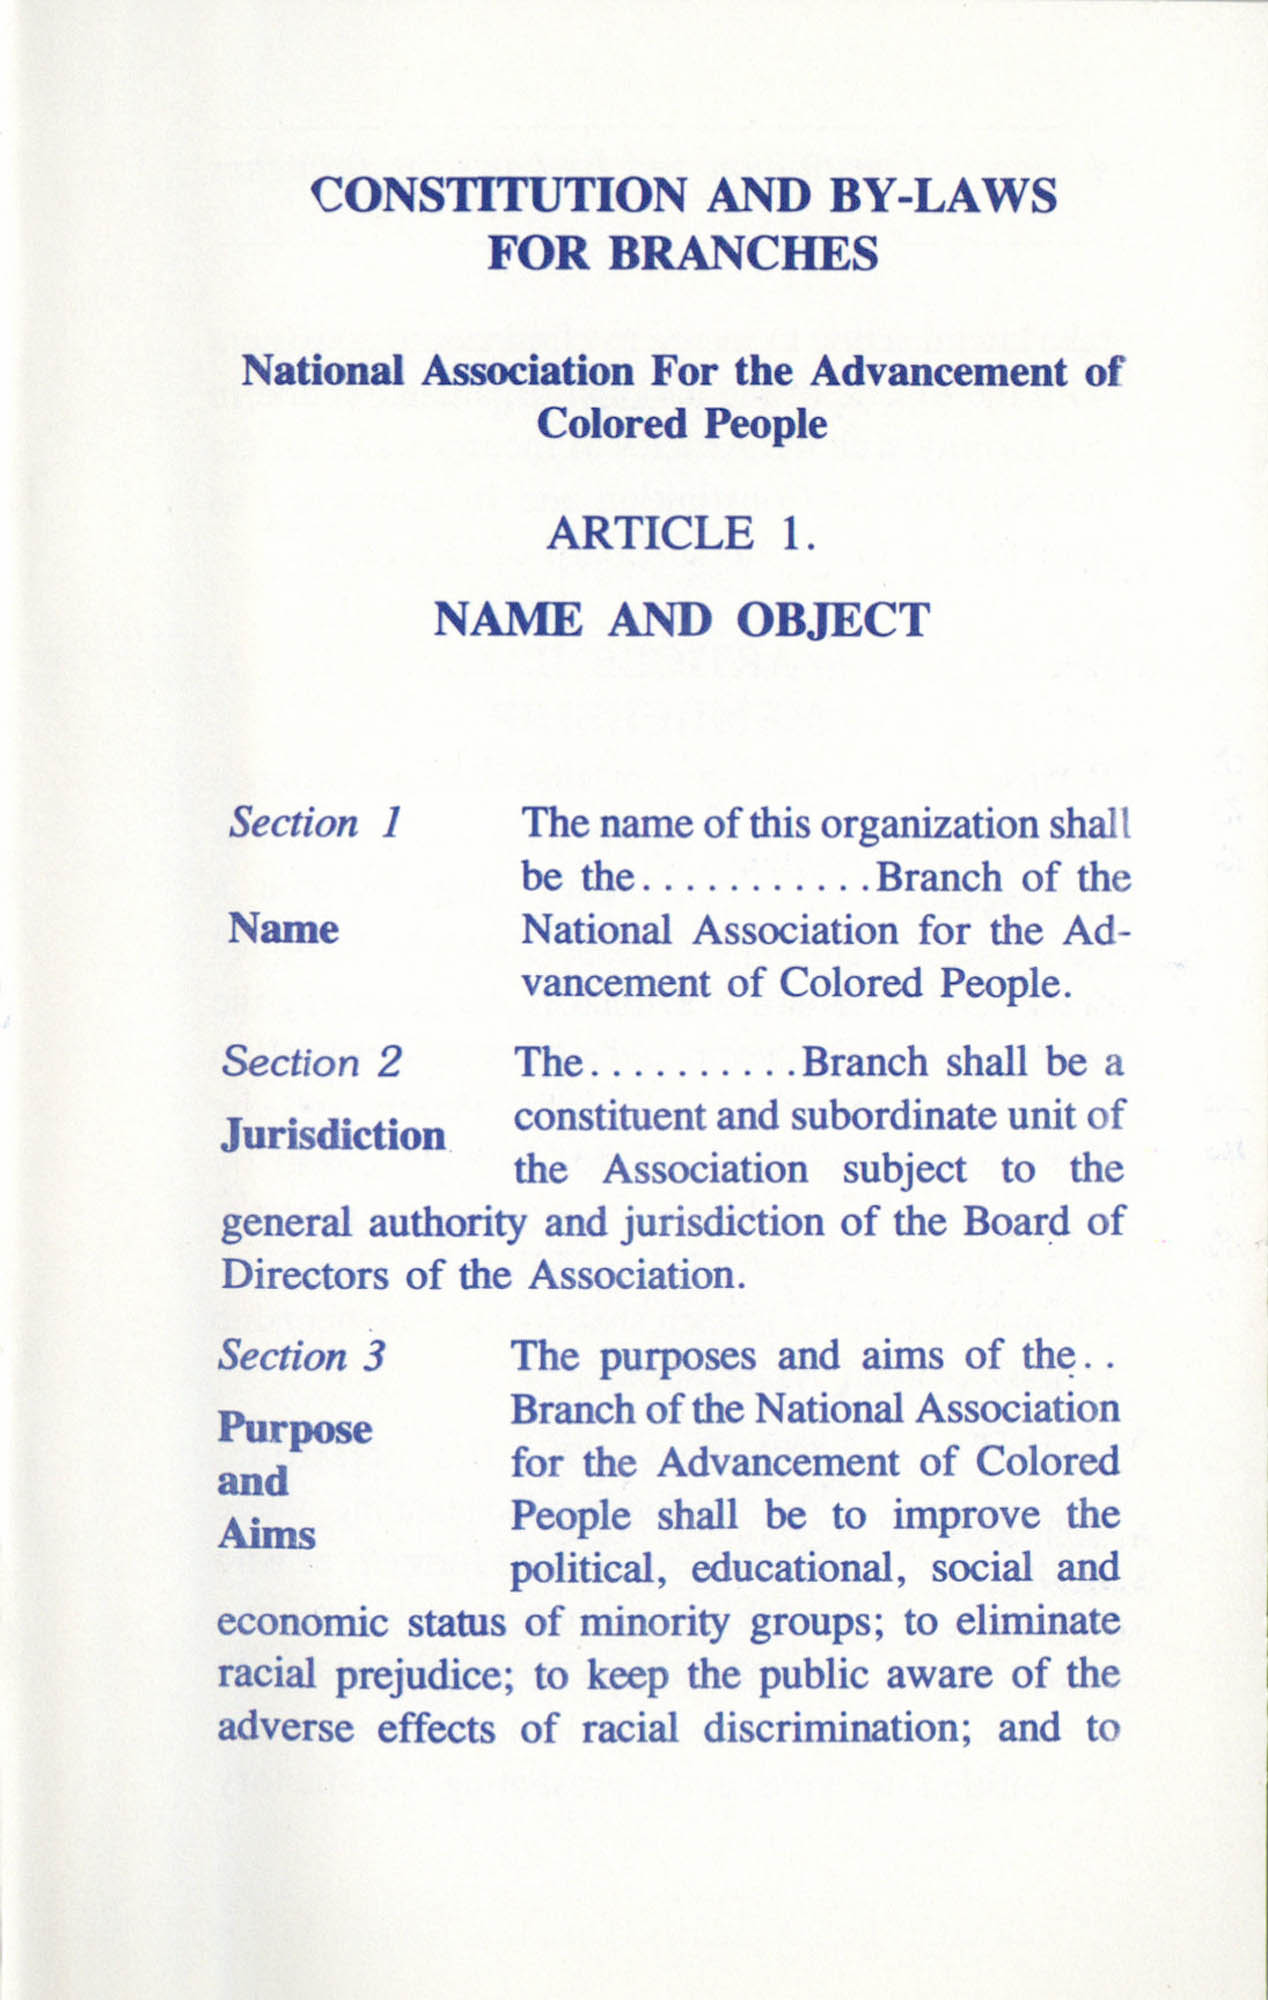 Constitution and By-Laws for Branches of the NAACP, June 1993, Page 3